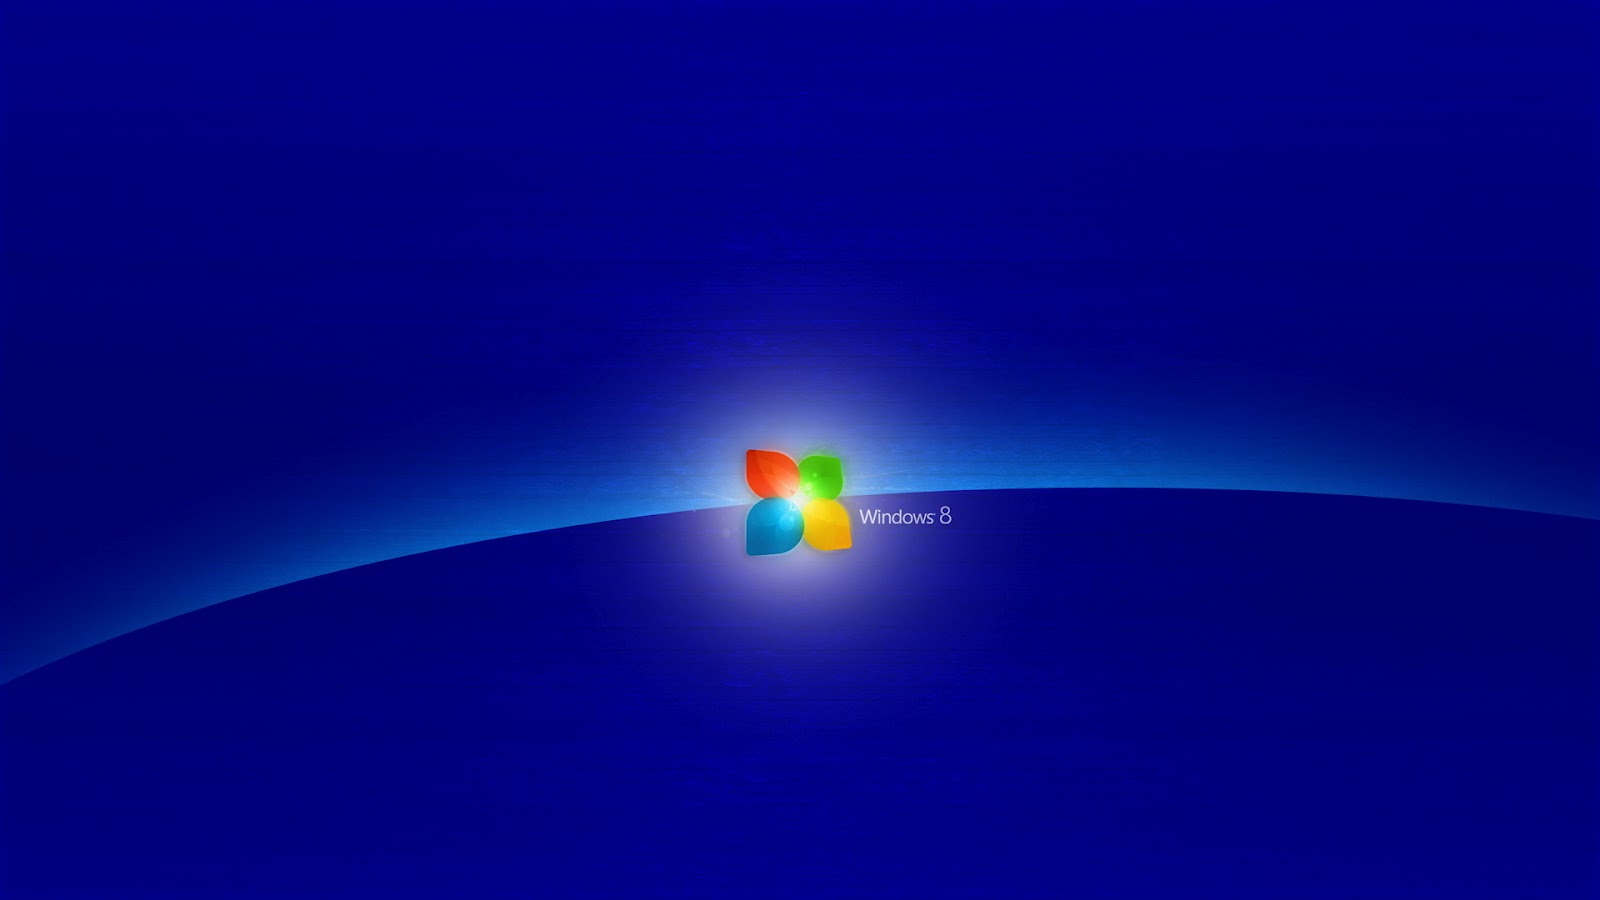 Windows 8 Adult Wallpapers For Windows 8 View Original [Updated on 1600x900